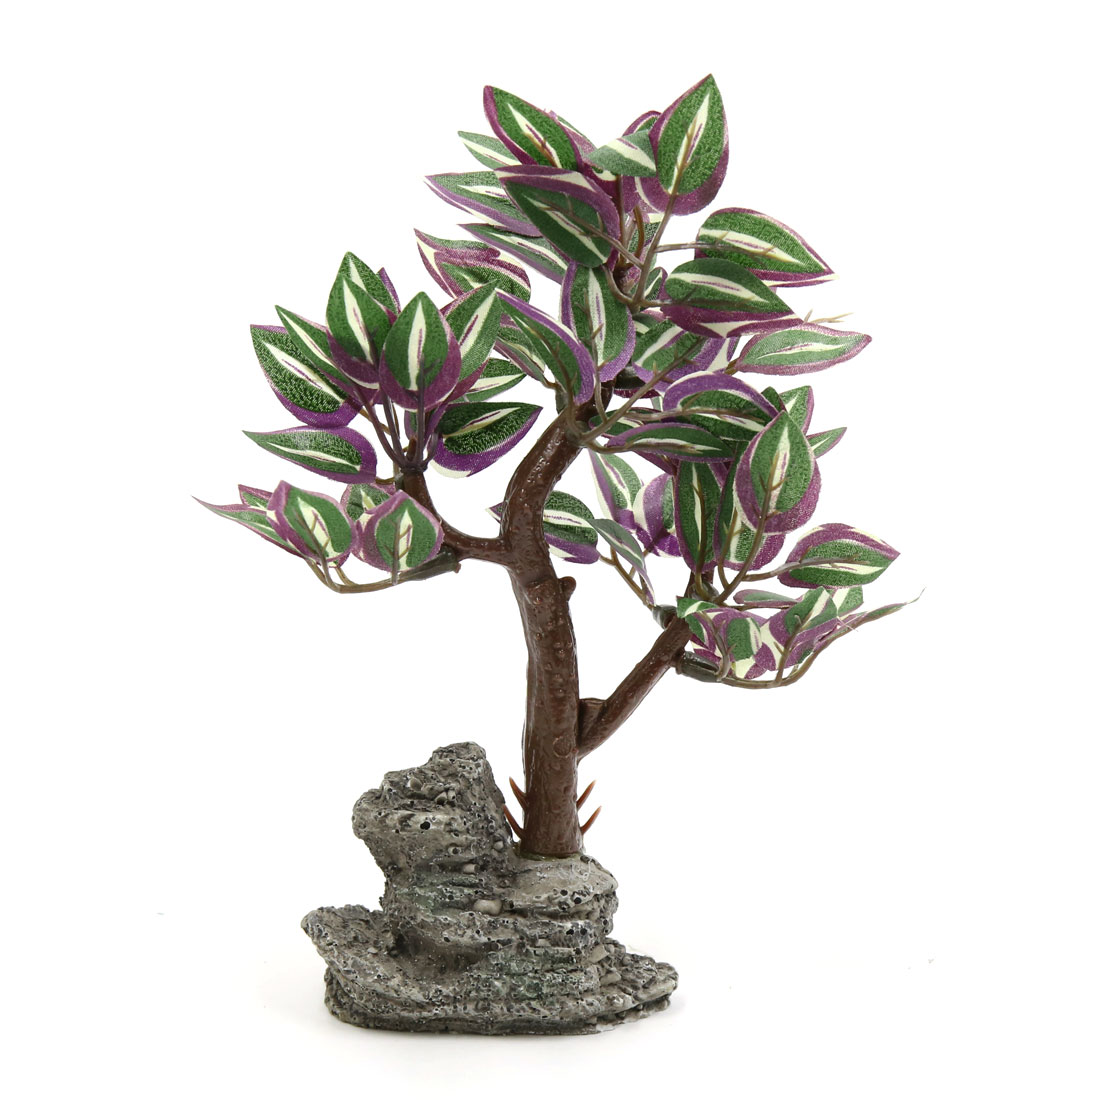 Home Plastic Lifelike Tree Aquarium Fishbowl Waterscape Decor Ornament w/ Stand